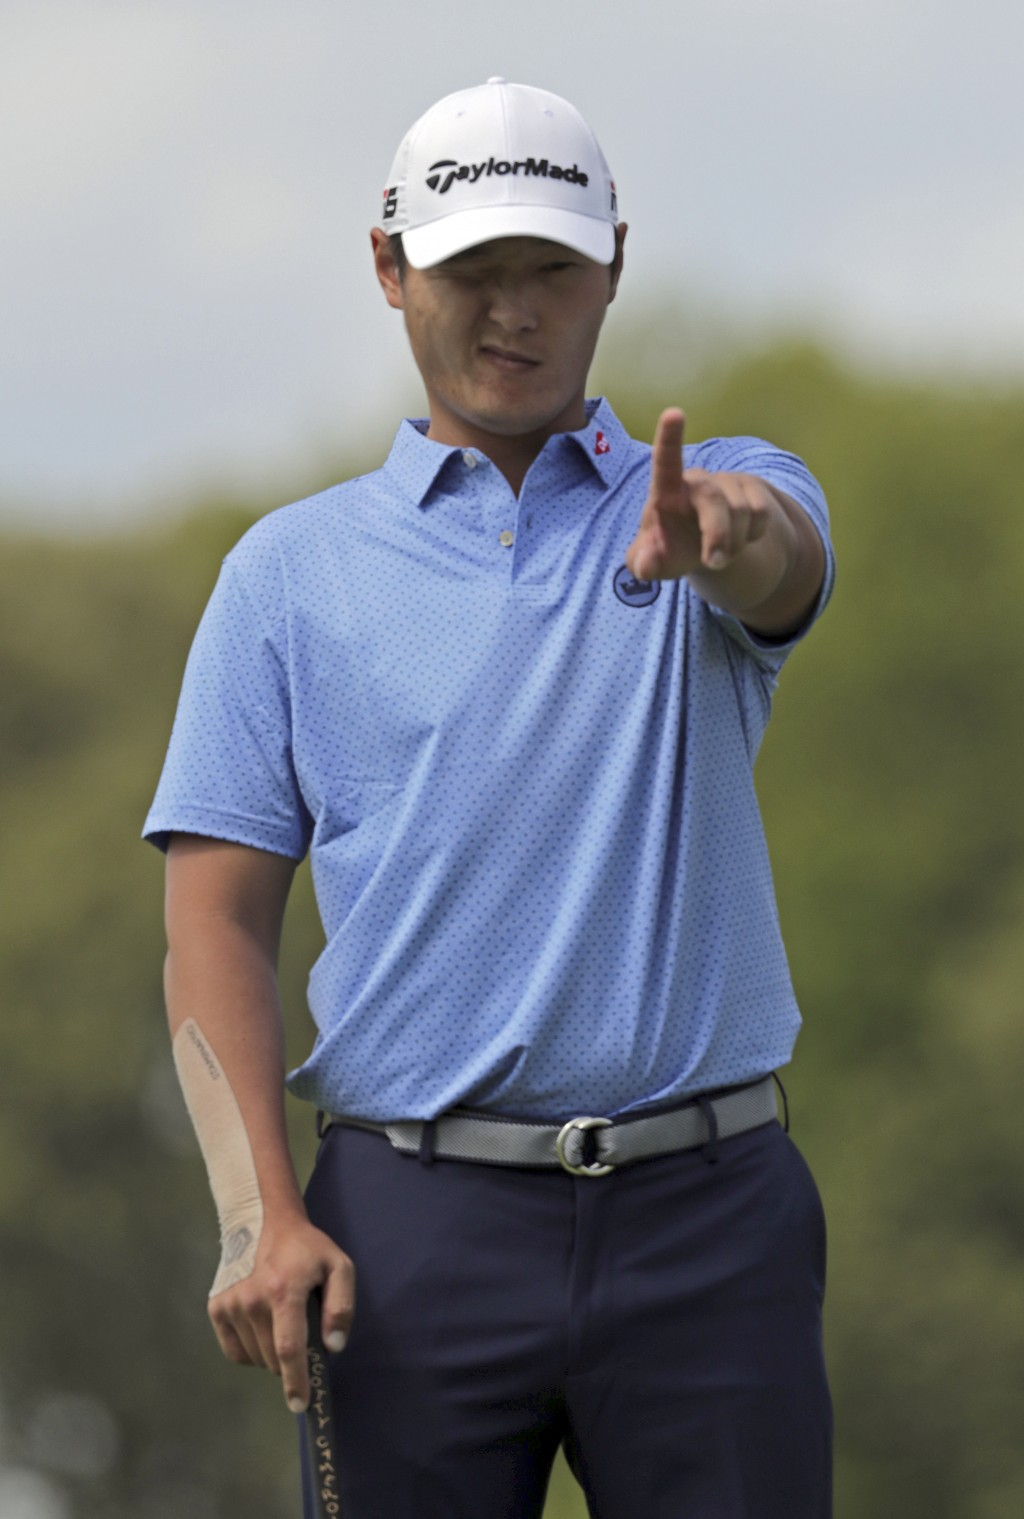 Danny Lee, of New Zealand, lines up a putt on the 11th green during the first round of the PGA Championship golf tournament, Thursday, May 16, 2019, a